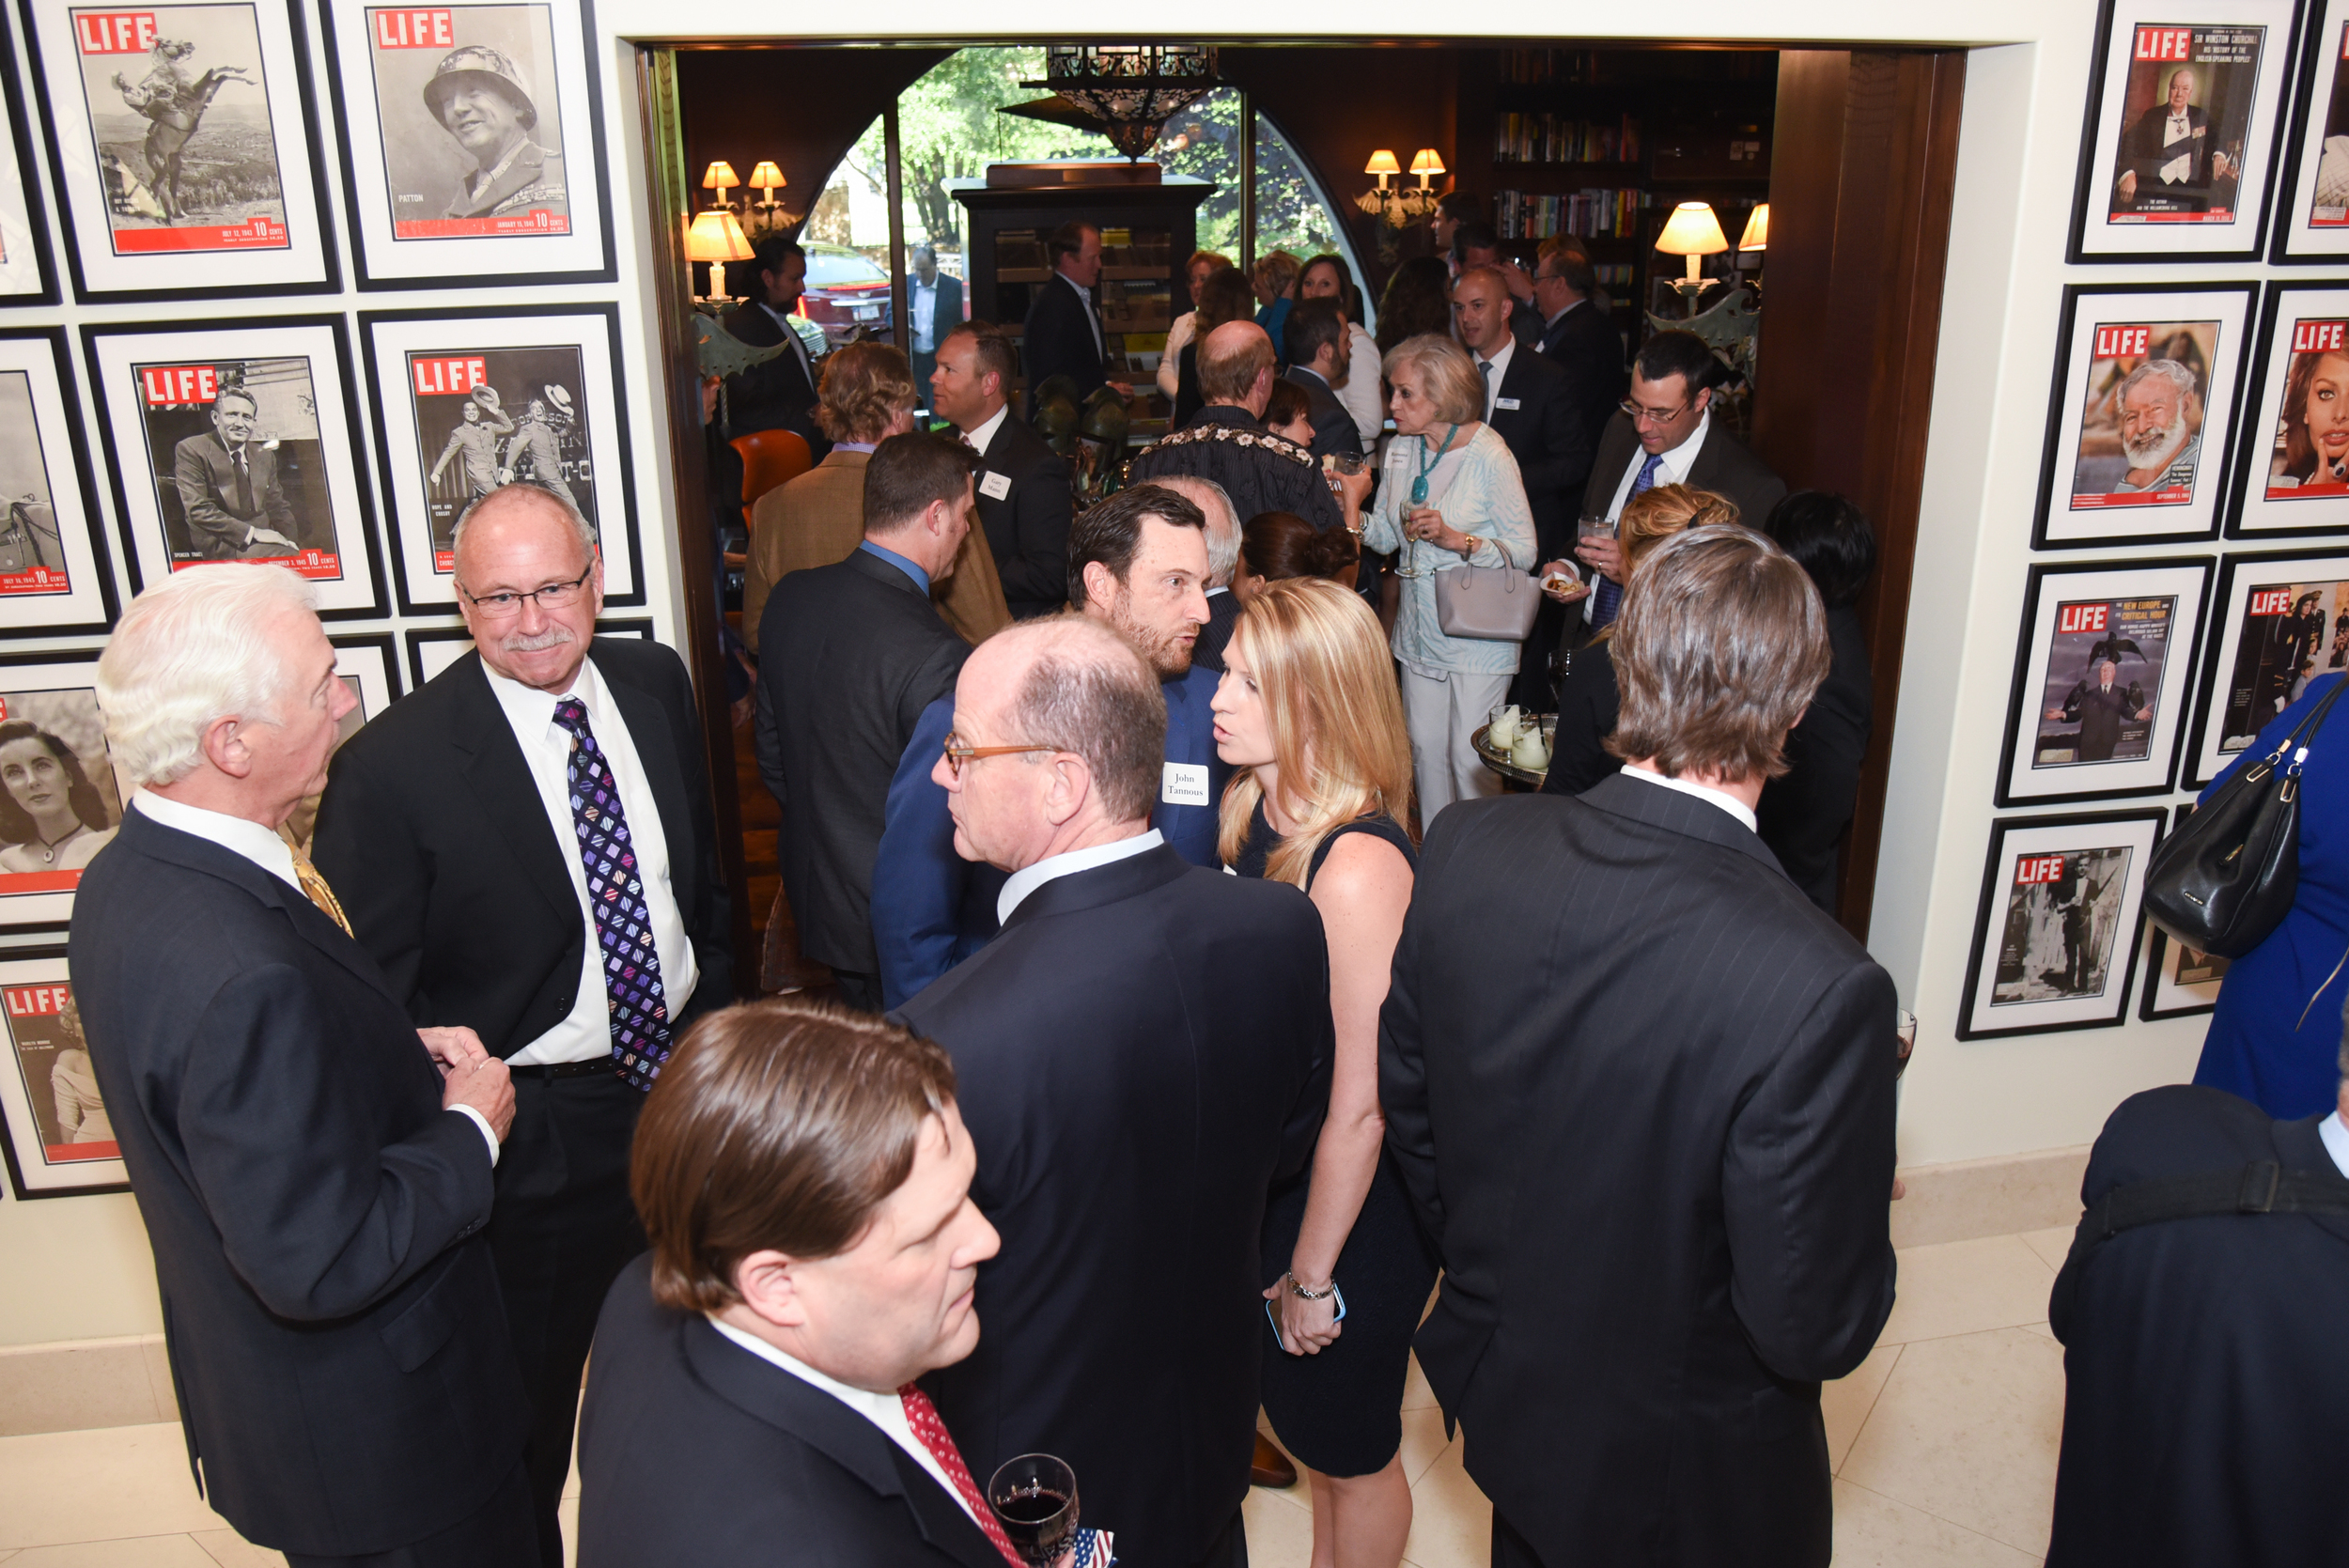 Guests mingle at the Ryan Zinke for Congress Dallas reception in May 2016.